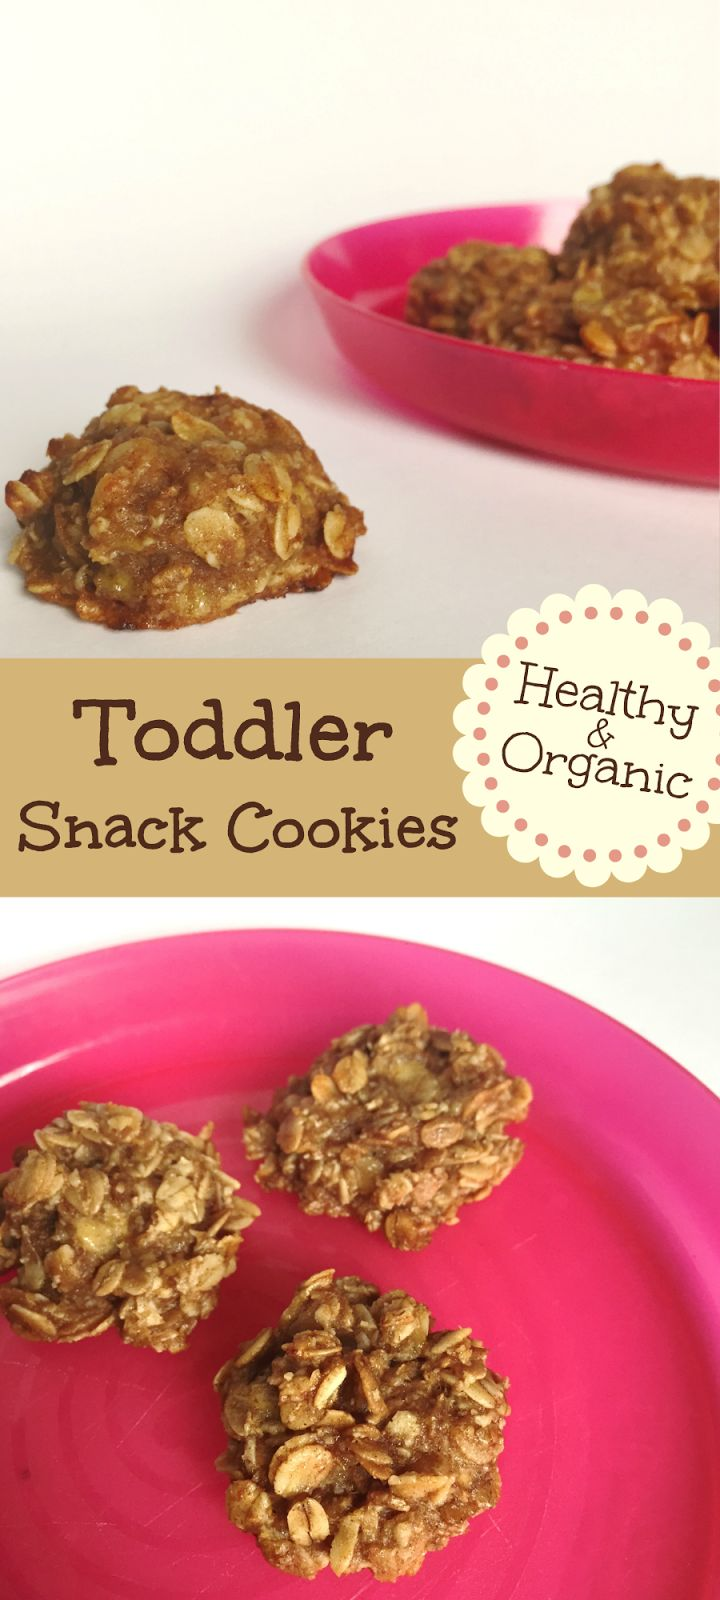 Twitchetts: Healthy & Organic Toddler Snack Cookies